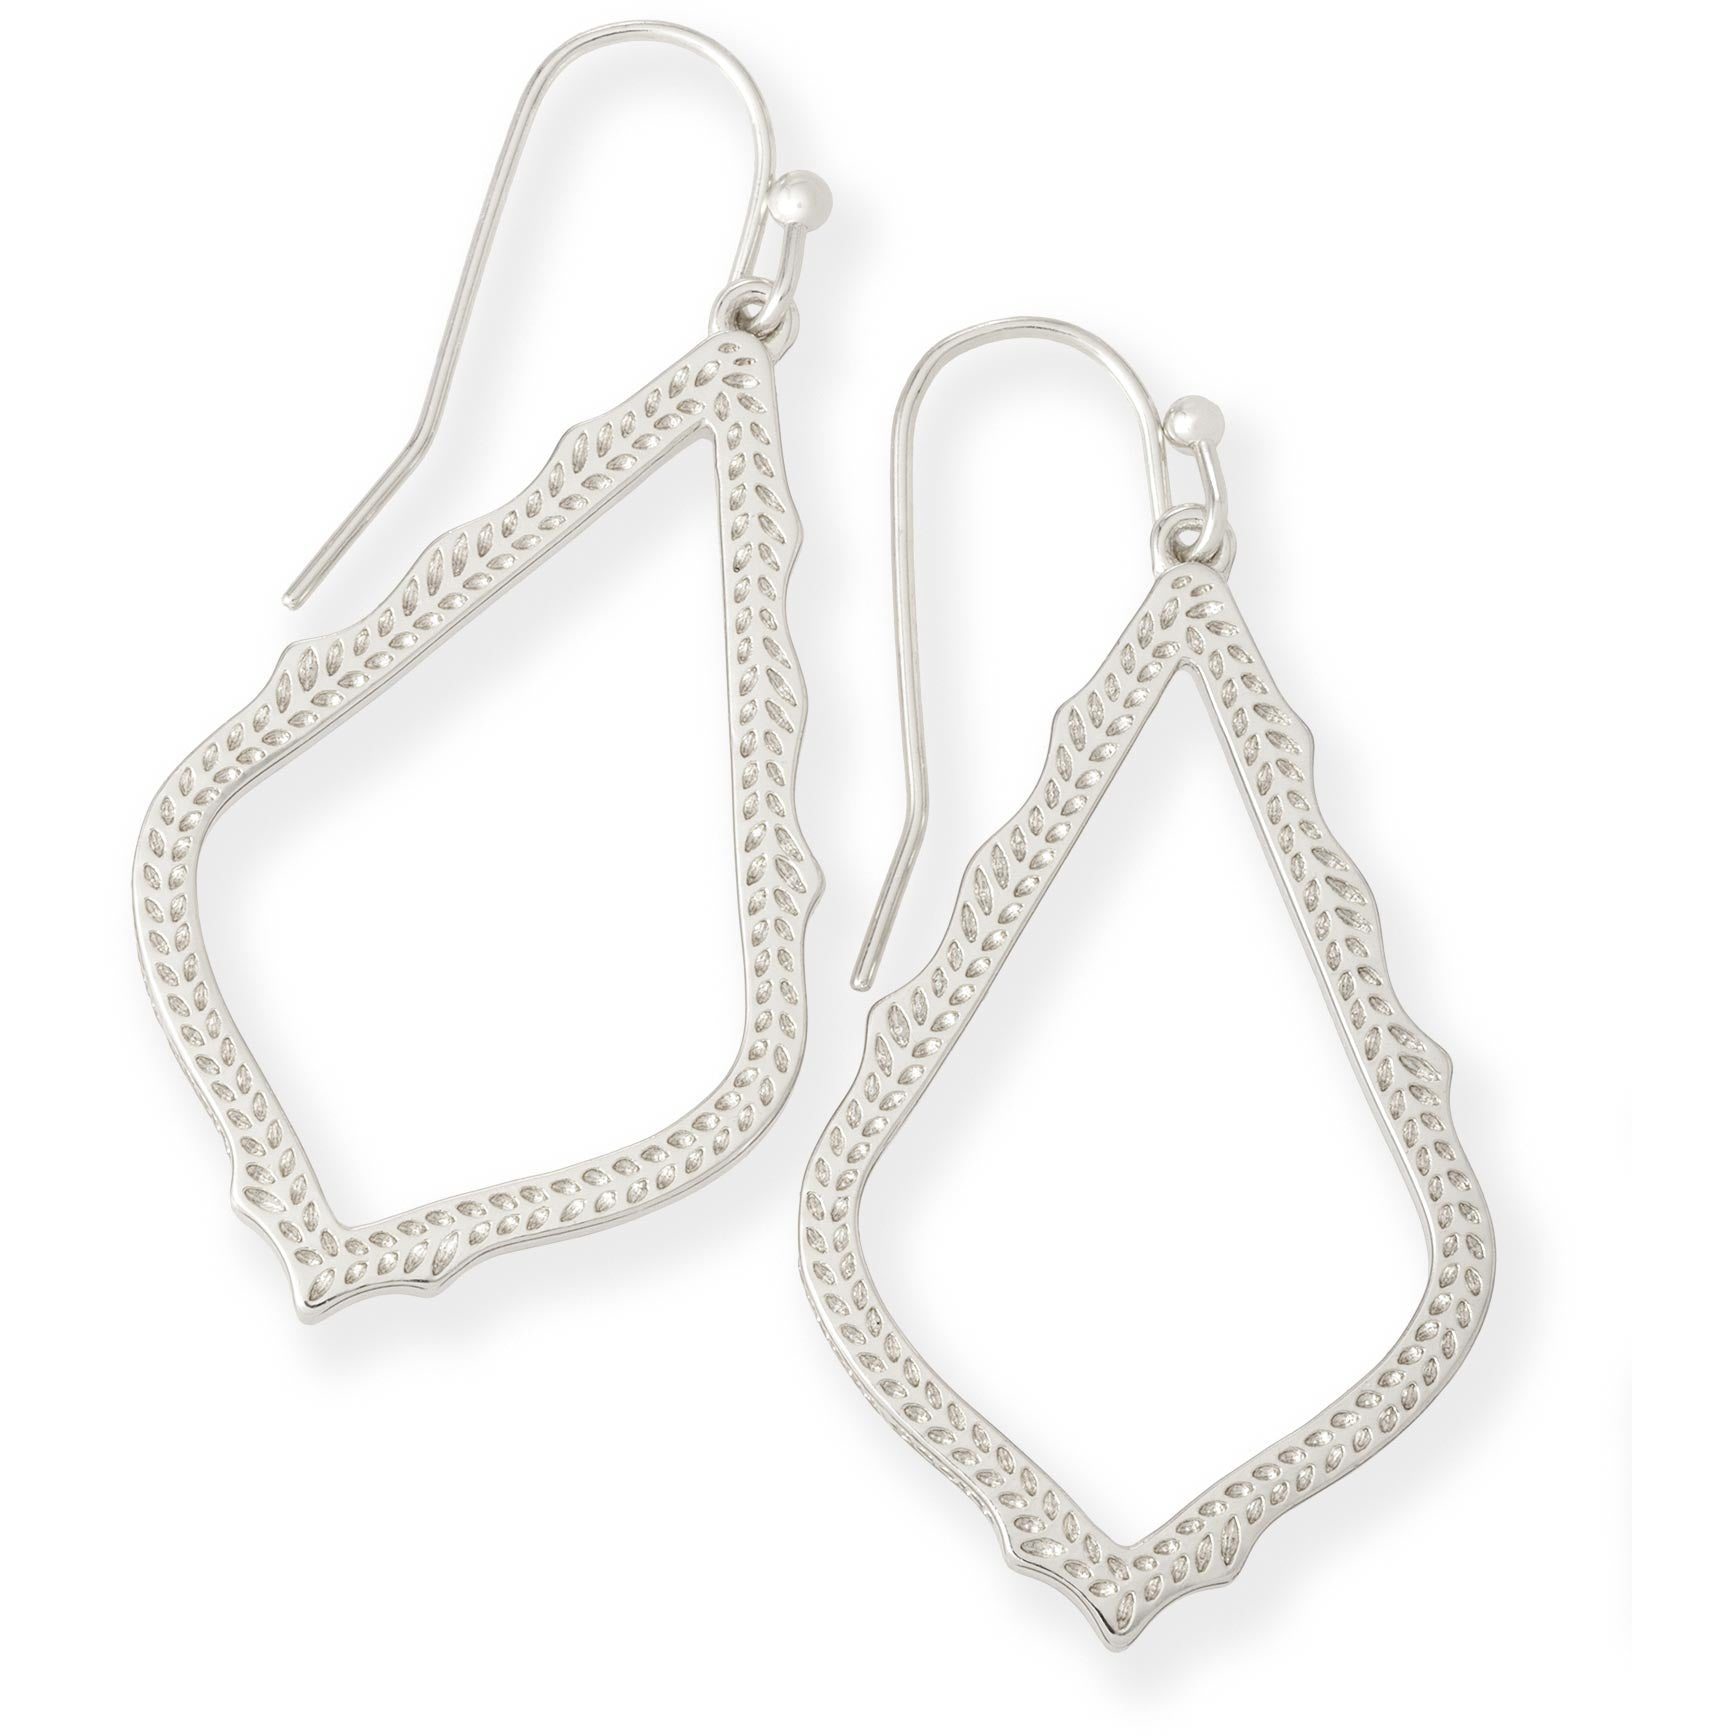 Kendra Scott - Sophia Drop Earrings in Silver, Front View